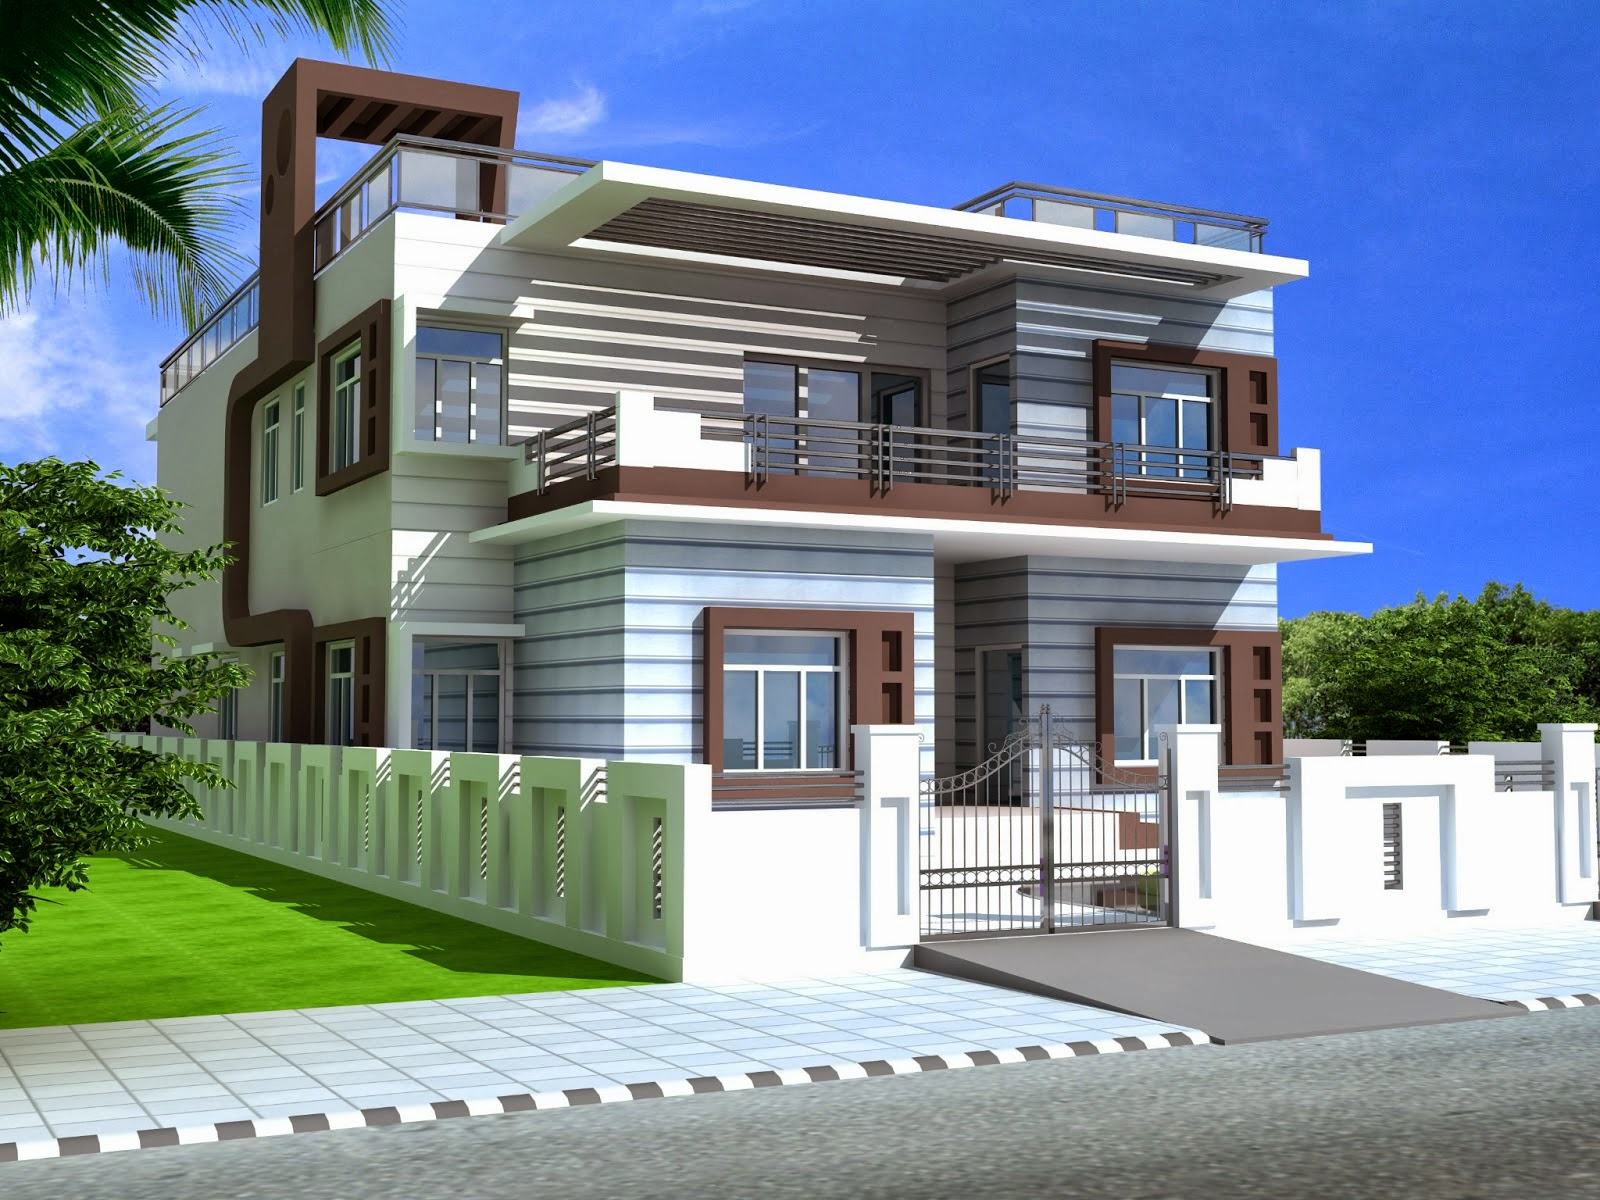 Foundation dezin decor duplex homes 3ds max work for Duplex houseplans